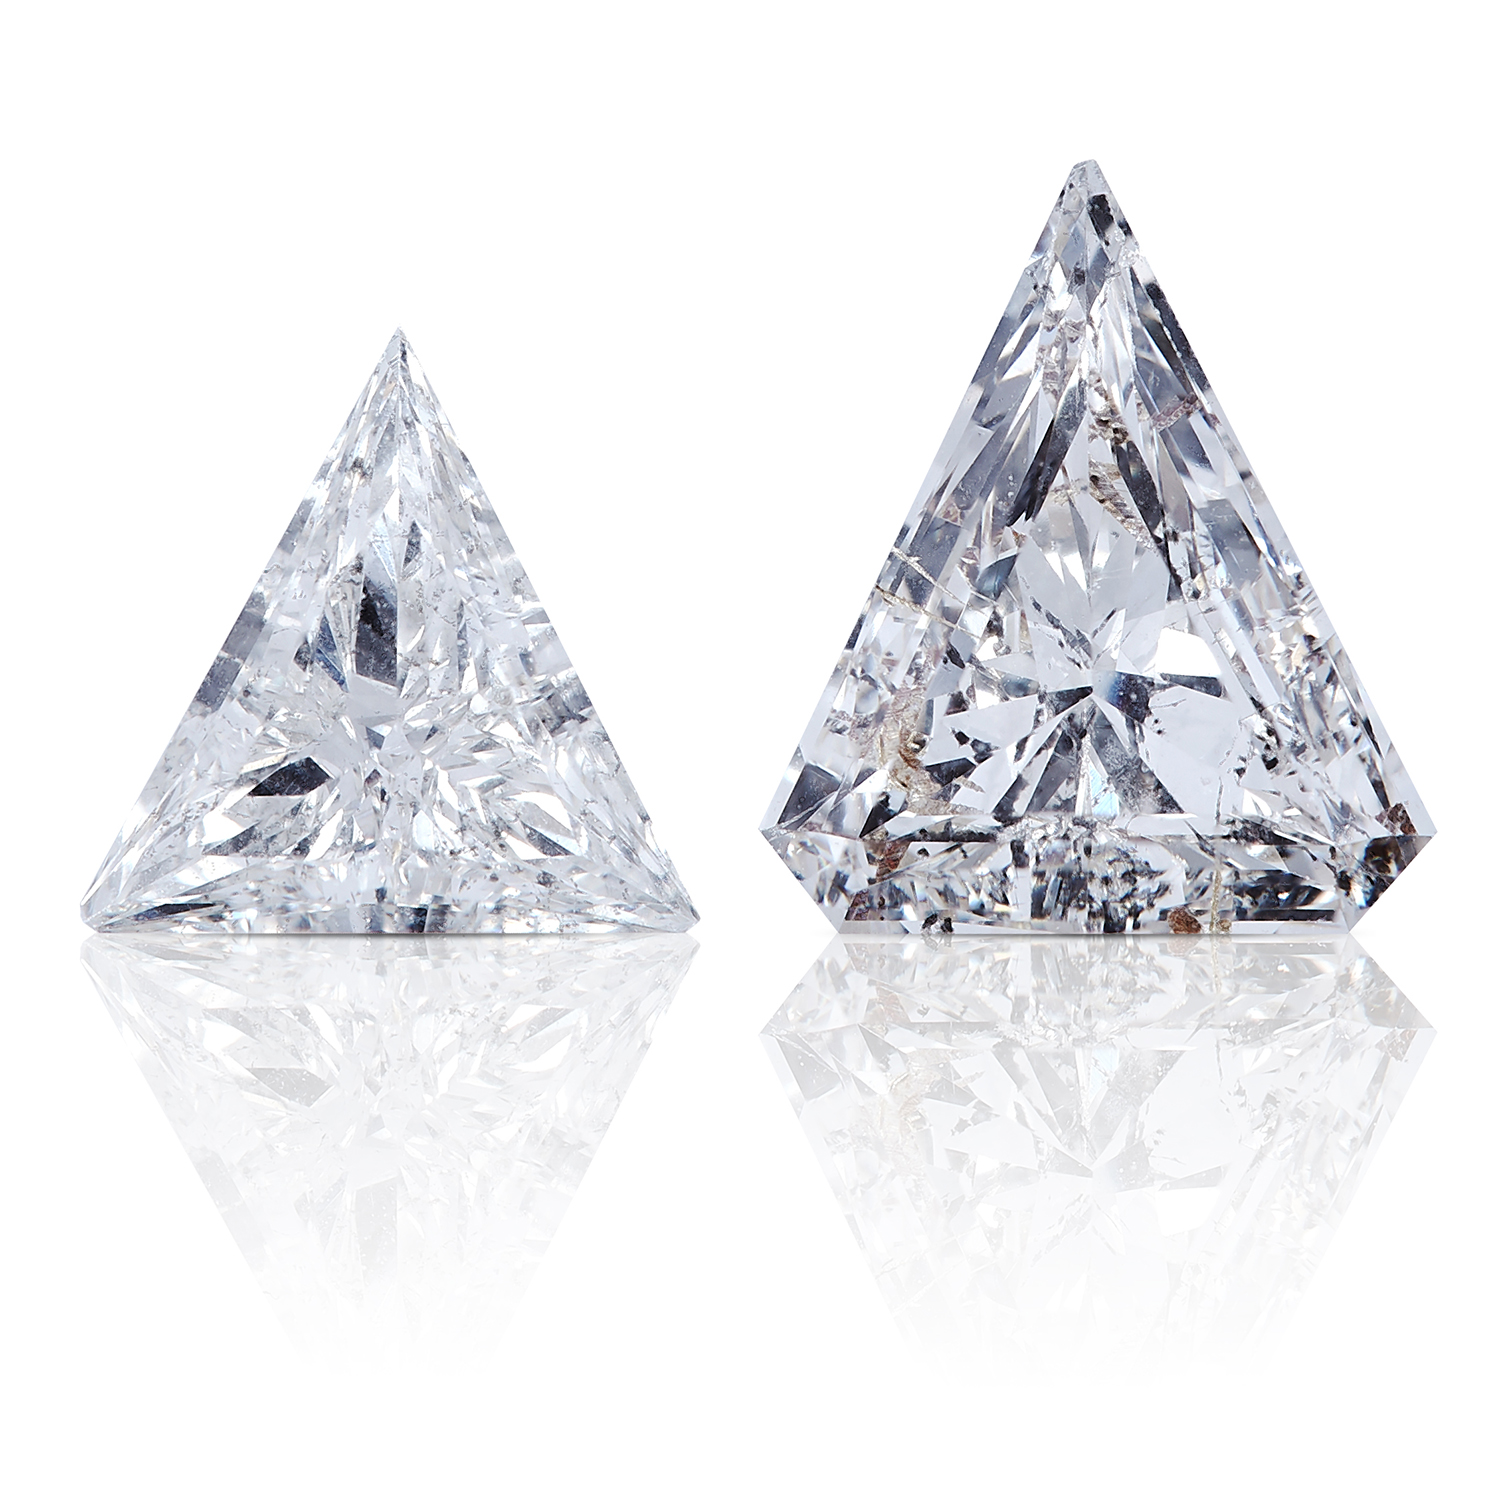 A FANCY STEP CUT DIAMOND AND A TRILLION CUT DIAMOND, TOTALLING 1.17cts, UNMOUNTED.